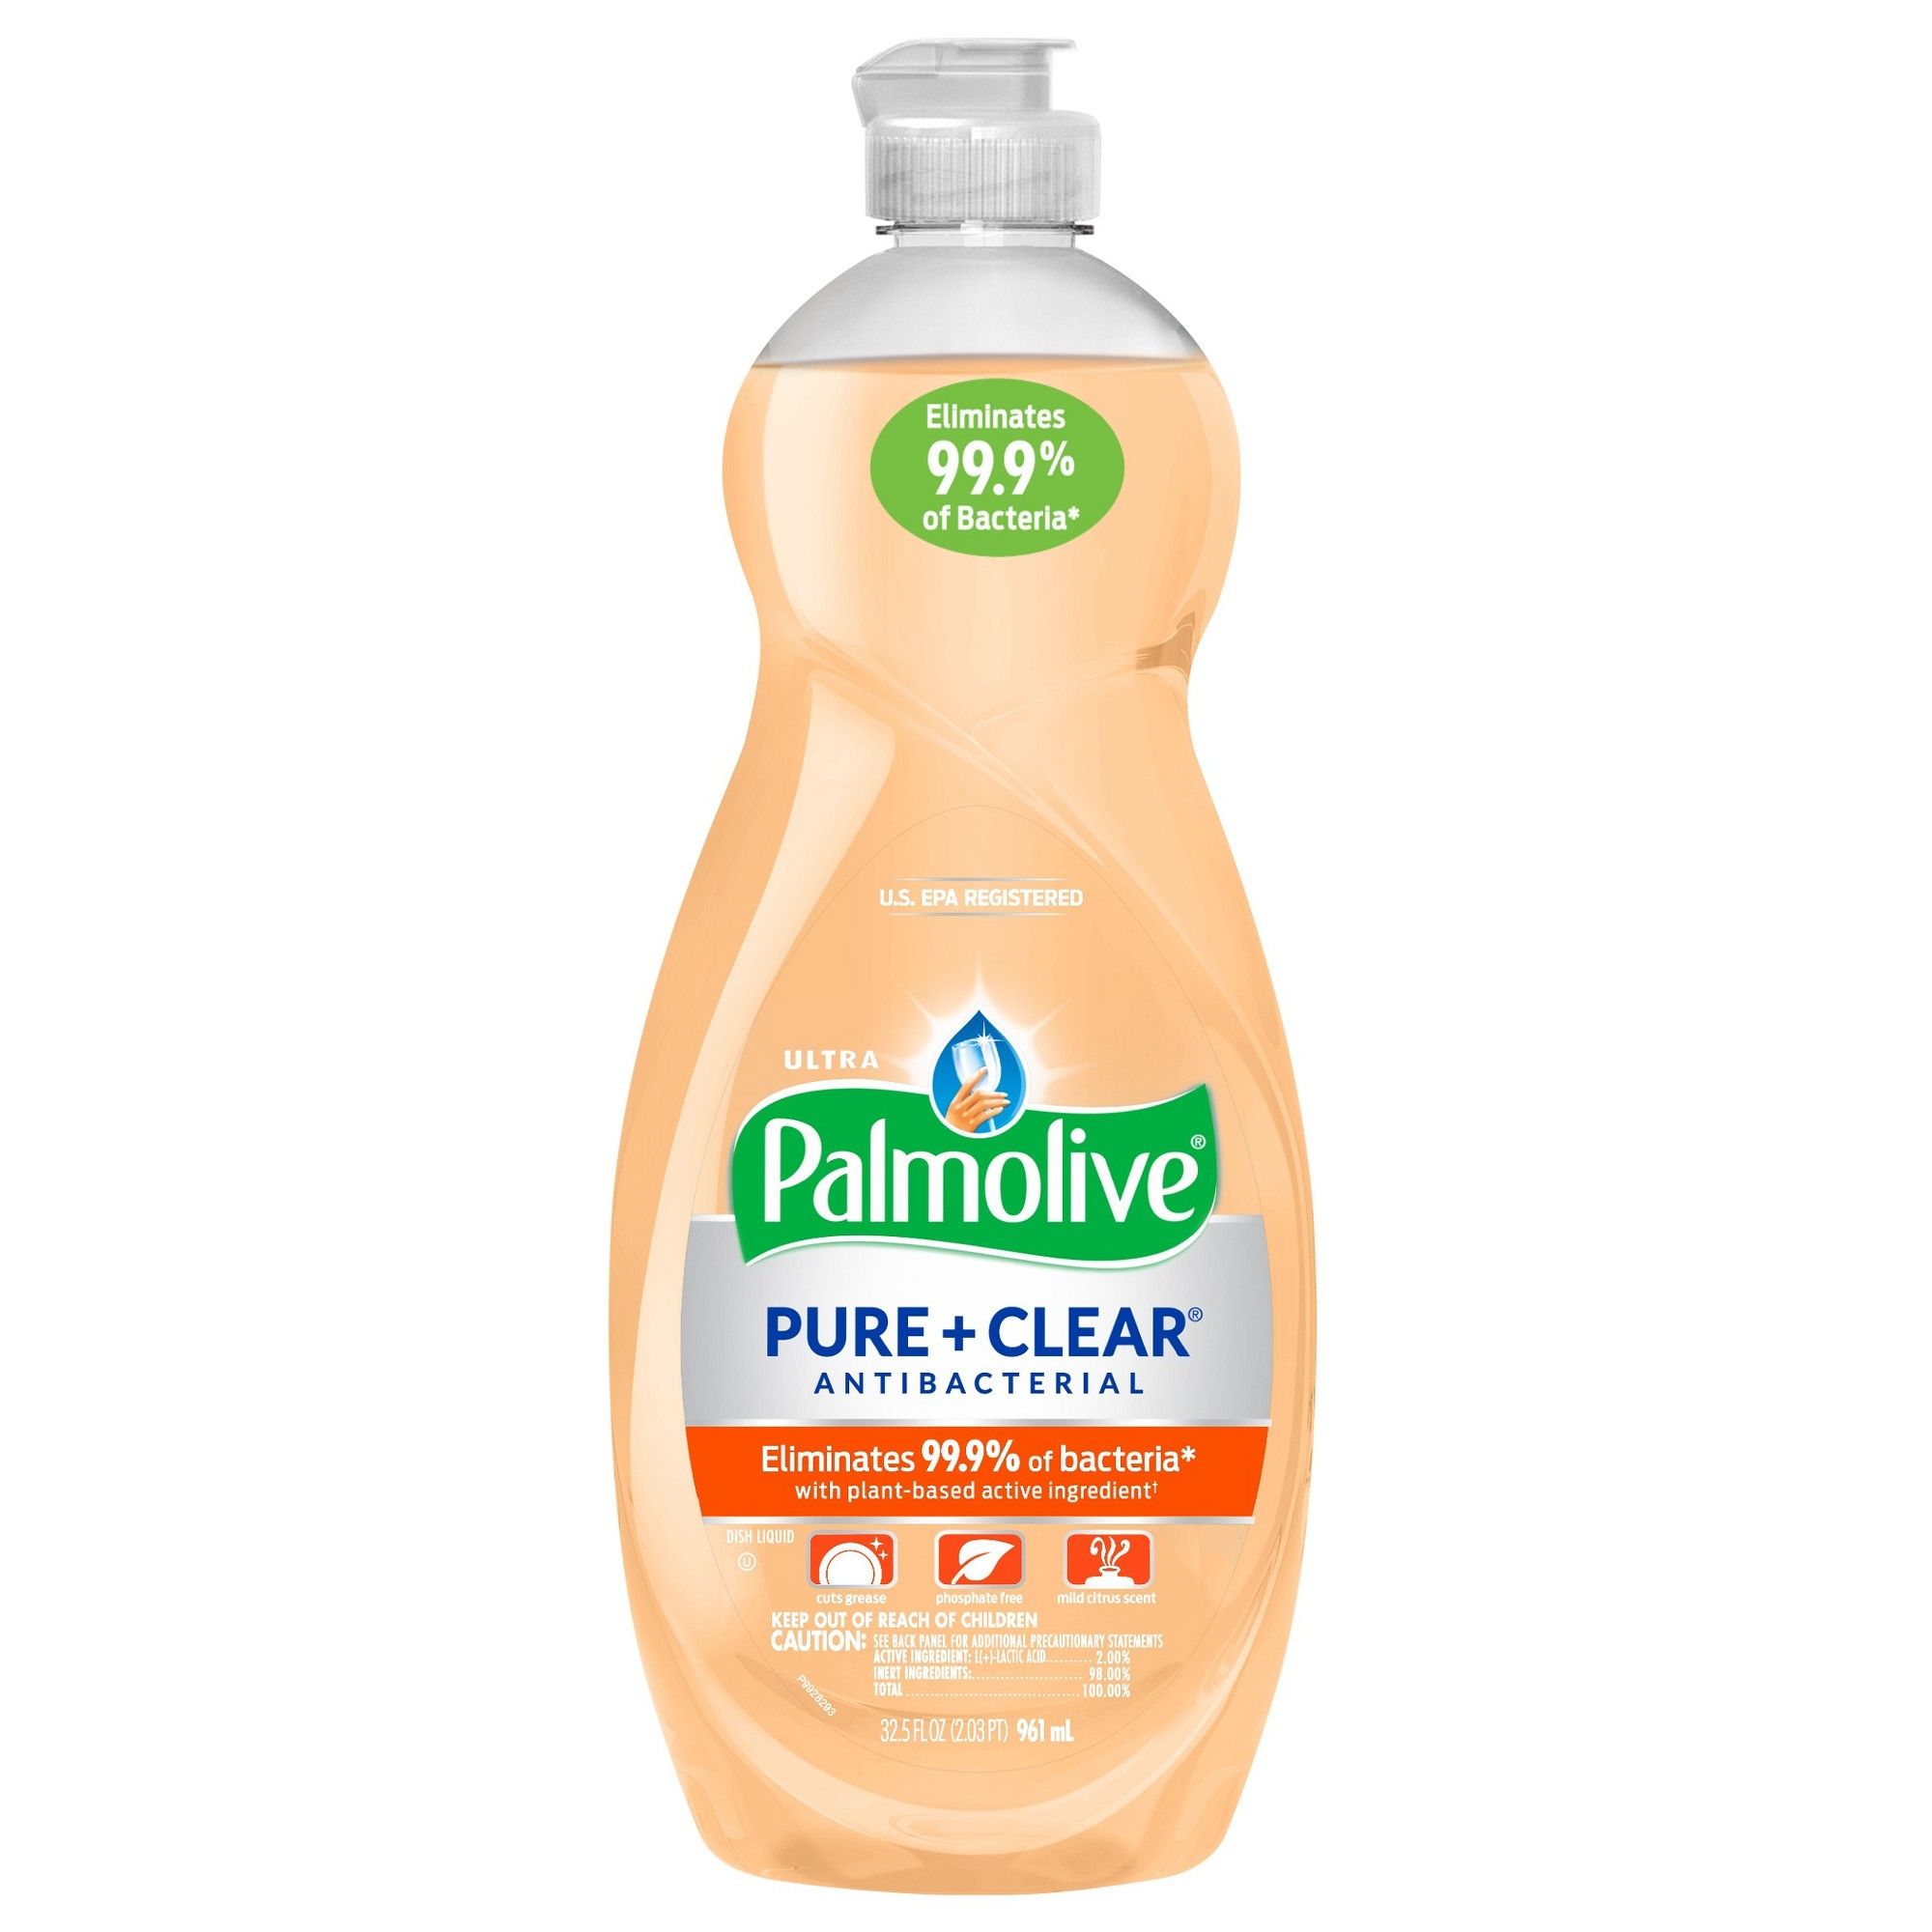 Palmolive Ultra Pure Clear Antibacterial Dish Soap 32 5oz